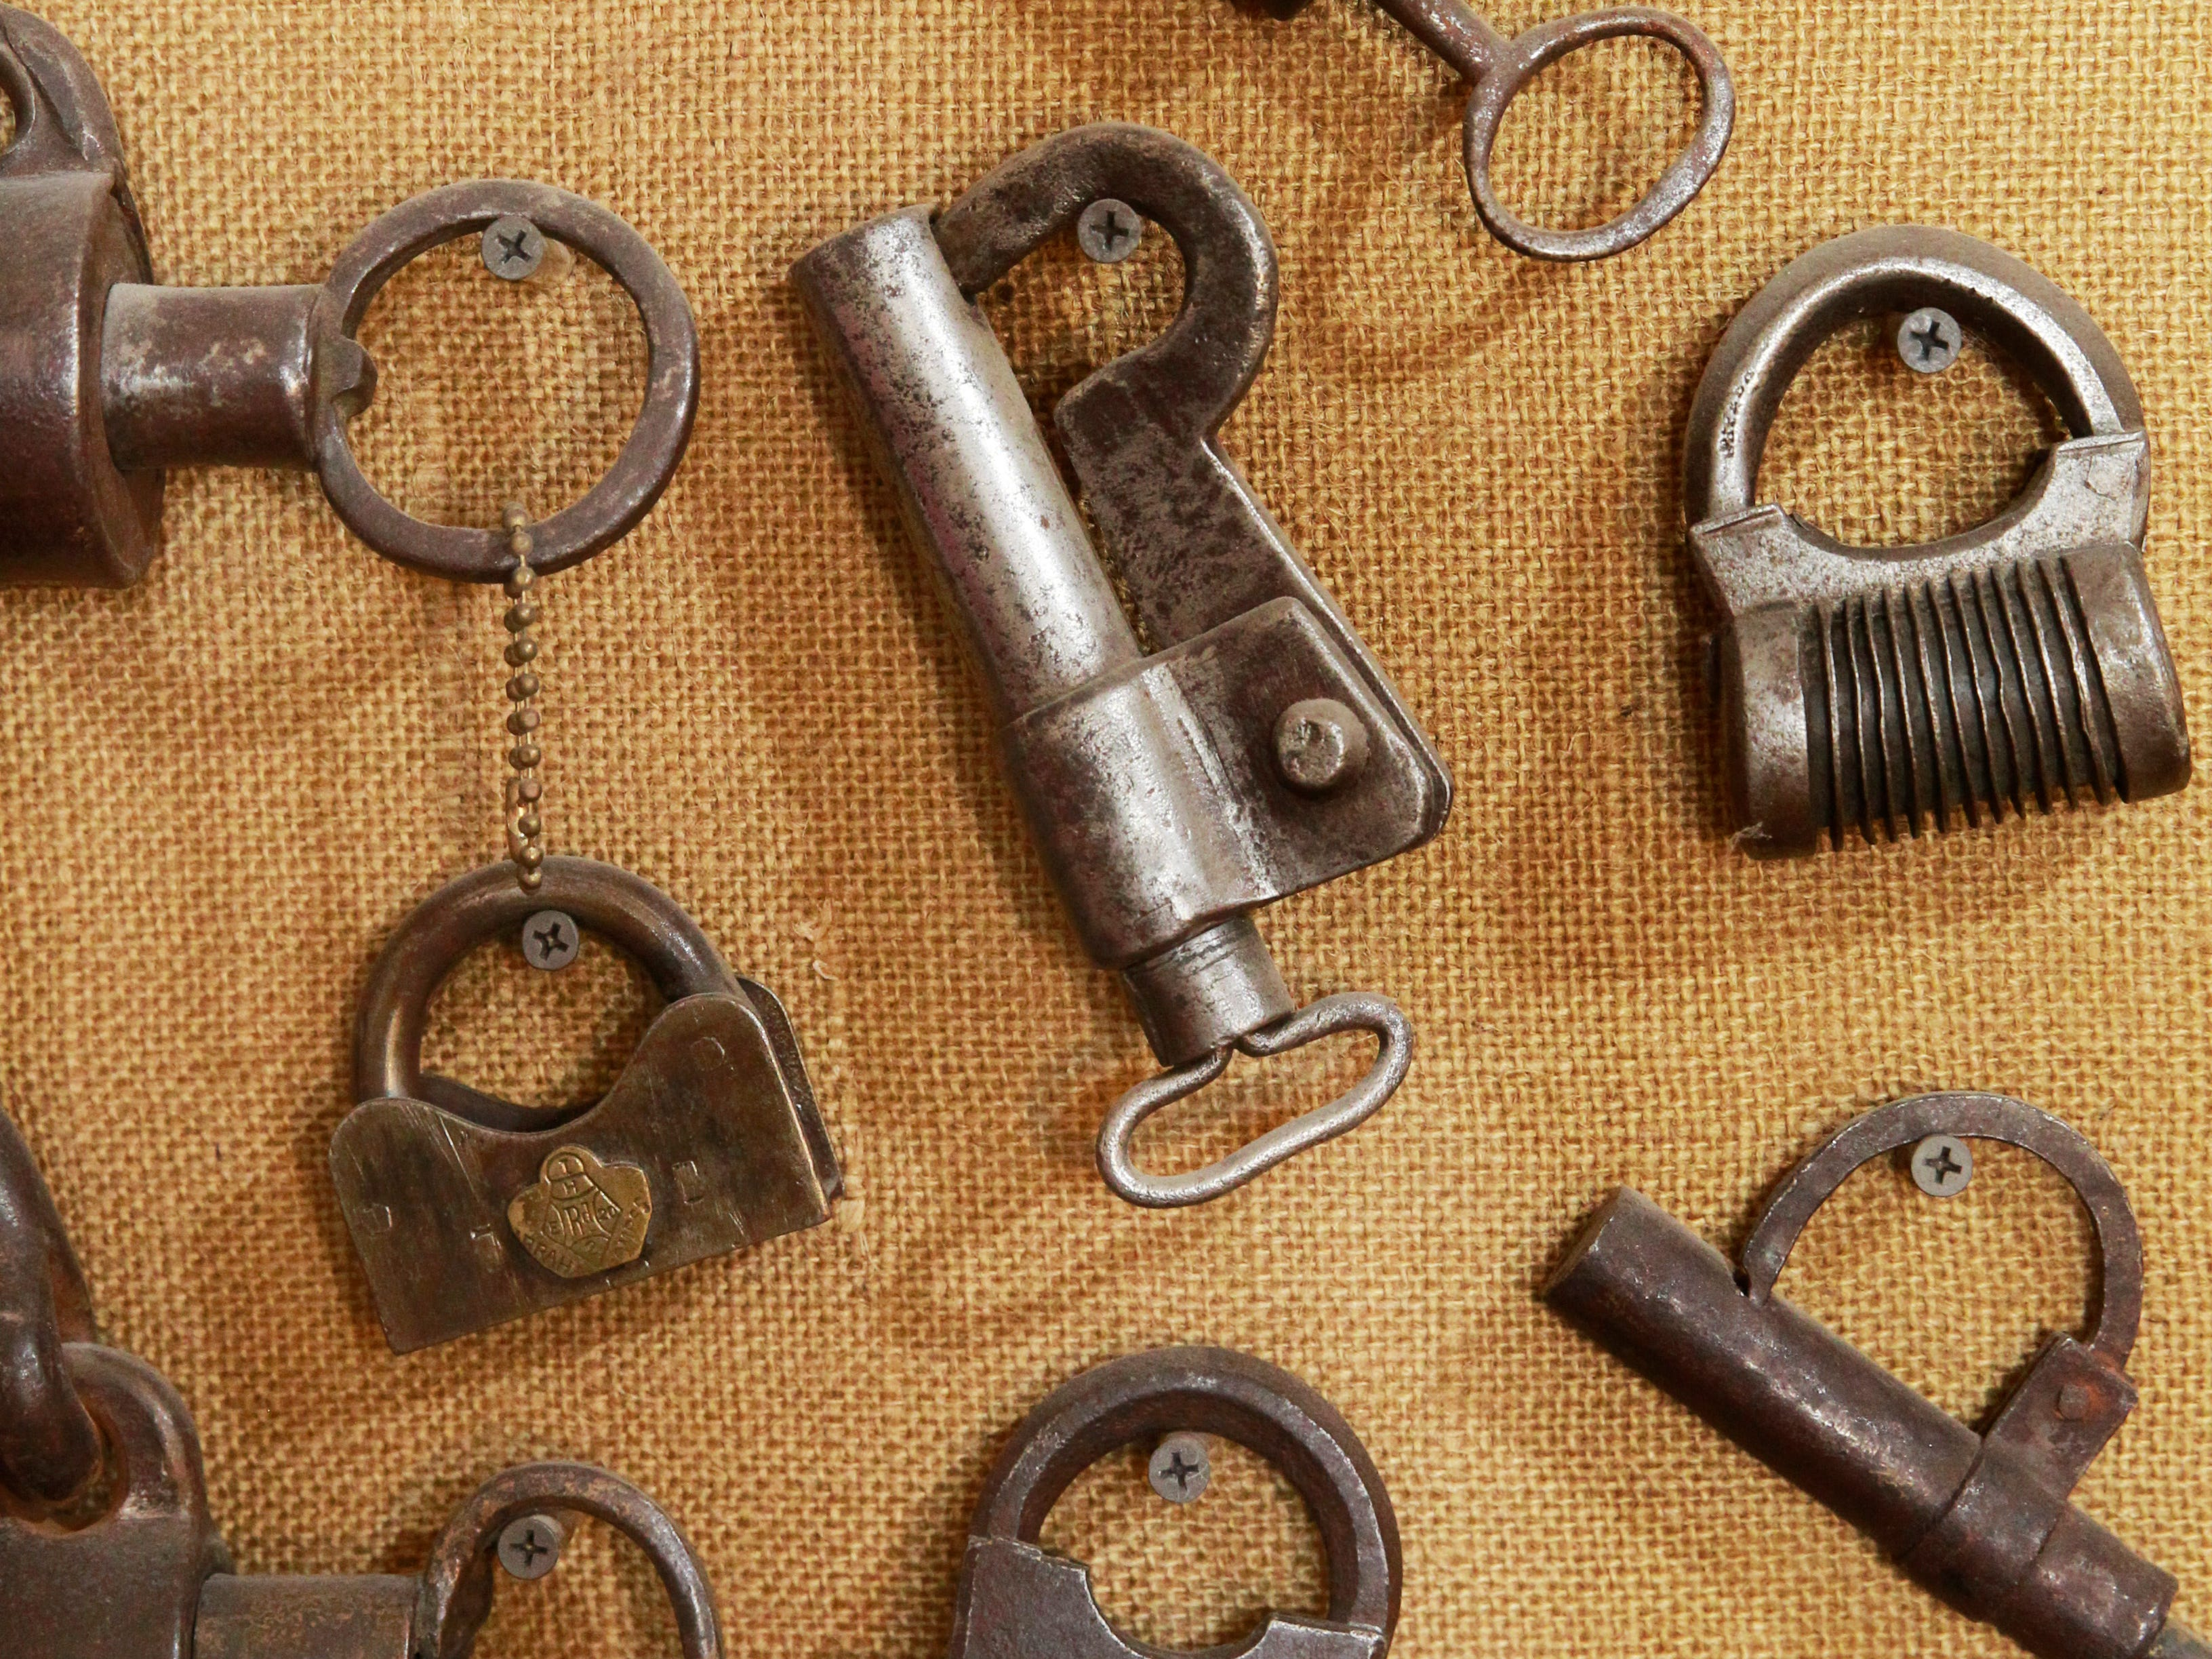 Only a few of Scott Stephan's extensive collection of locks is on display in his home.